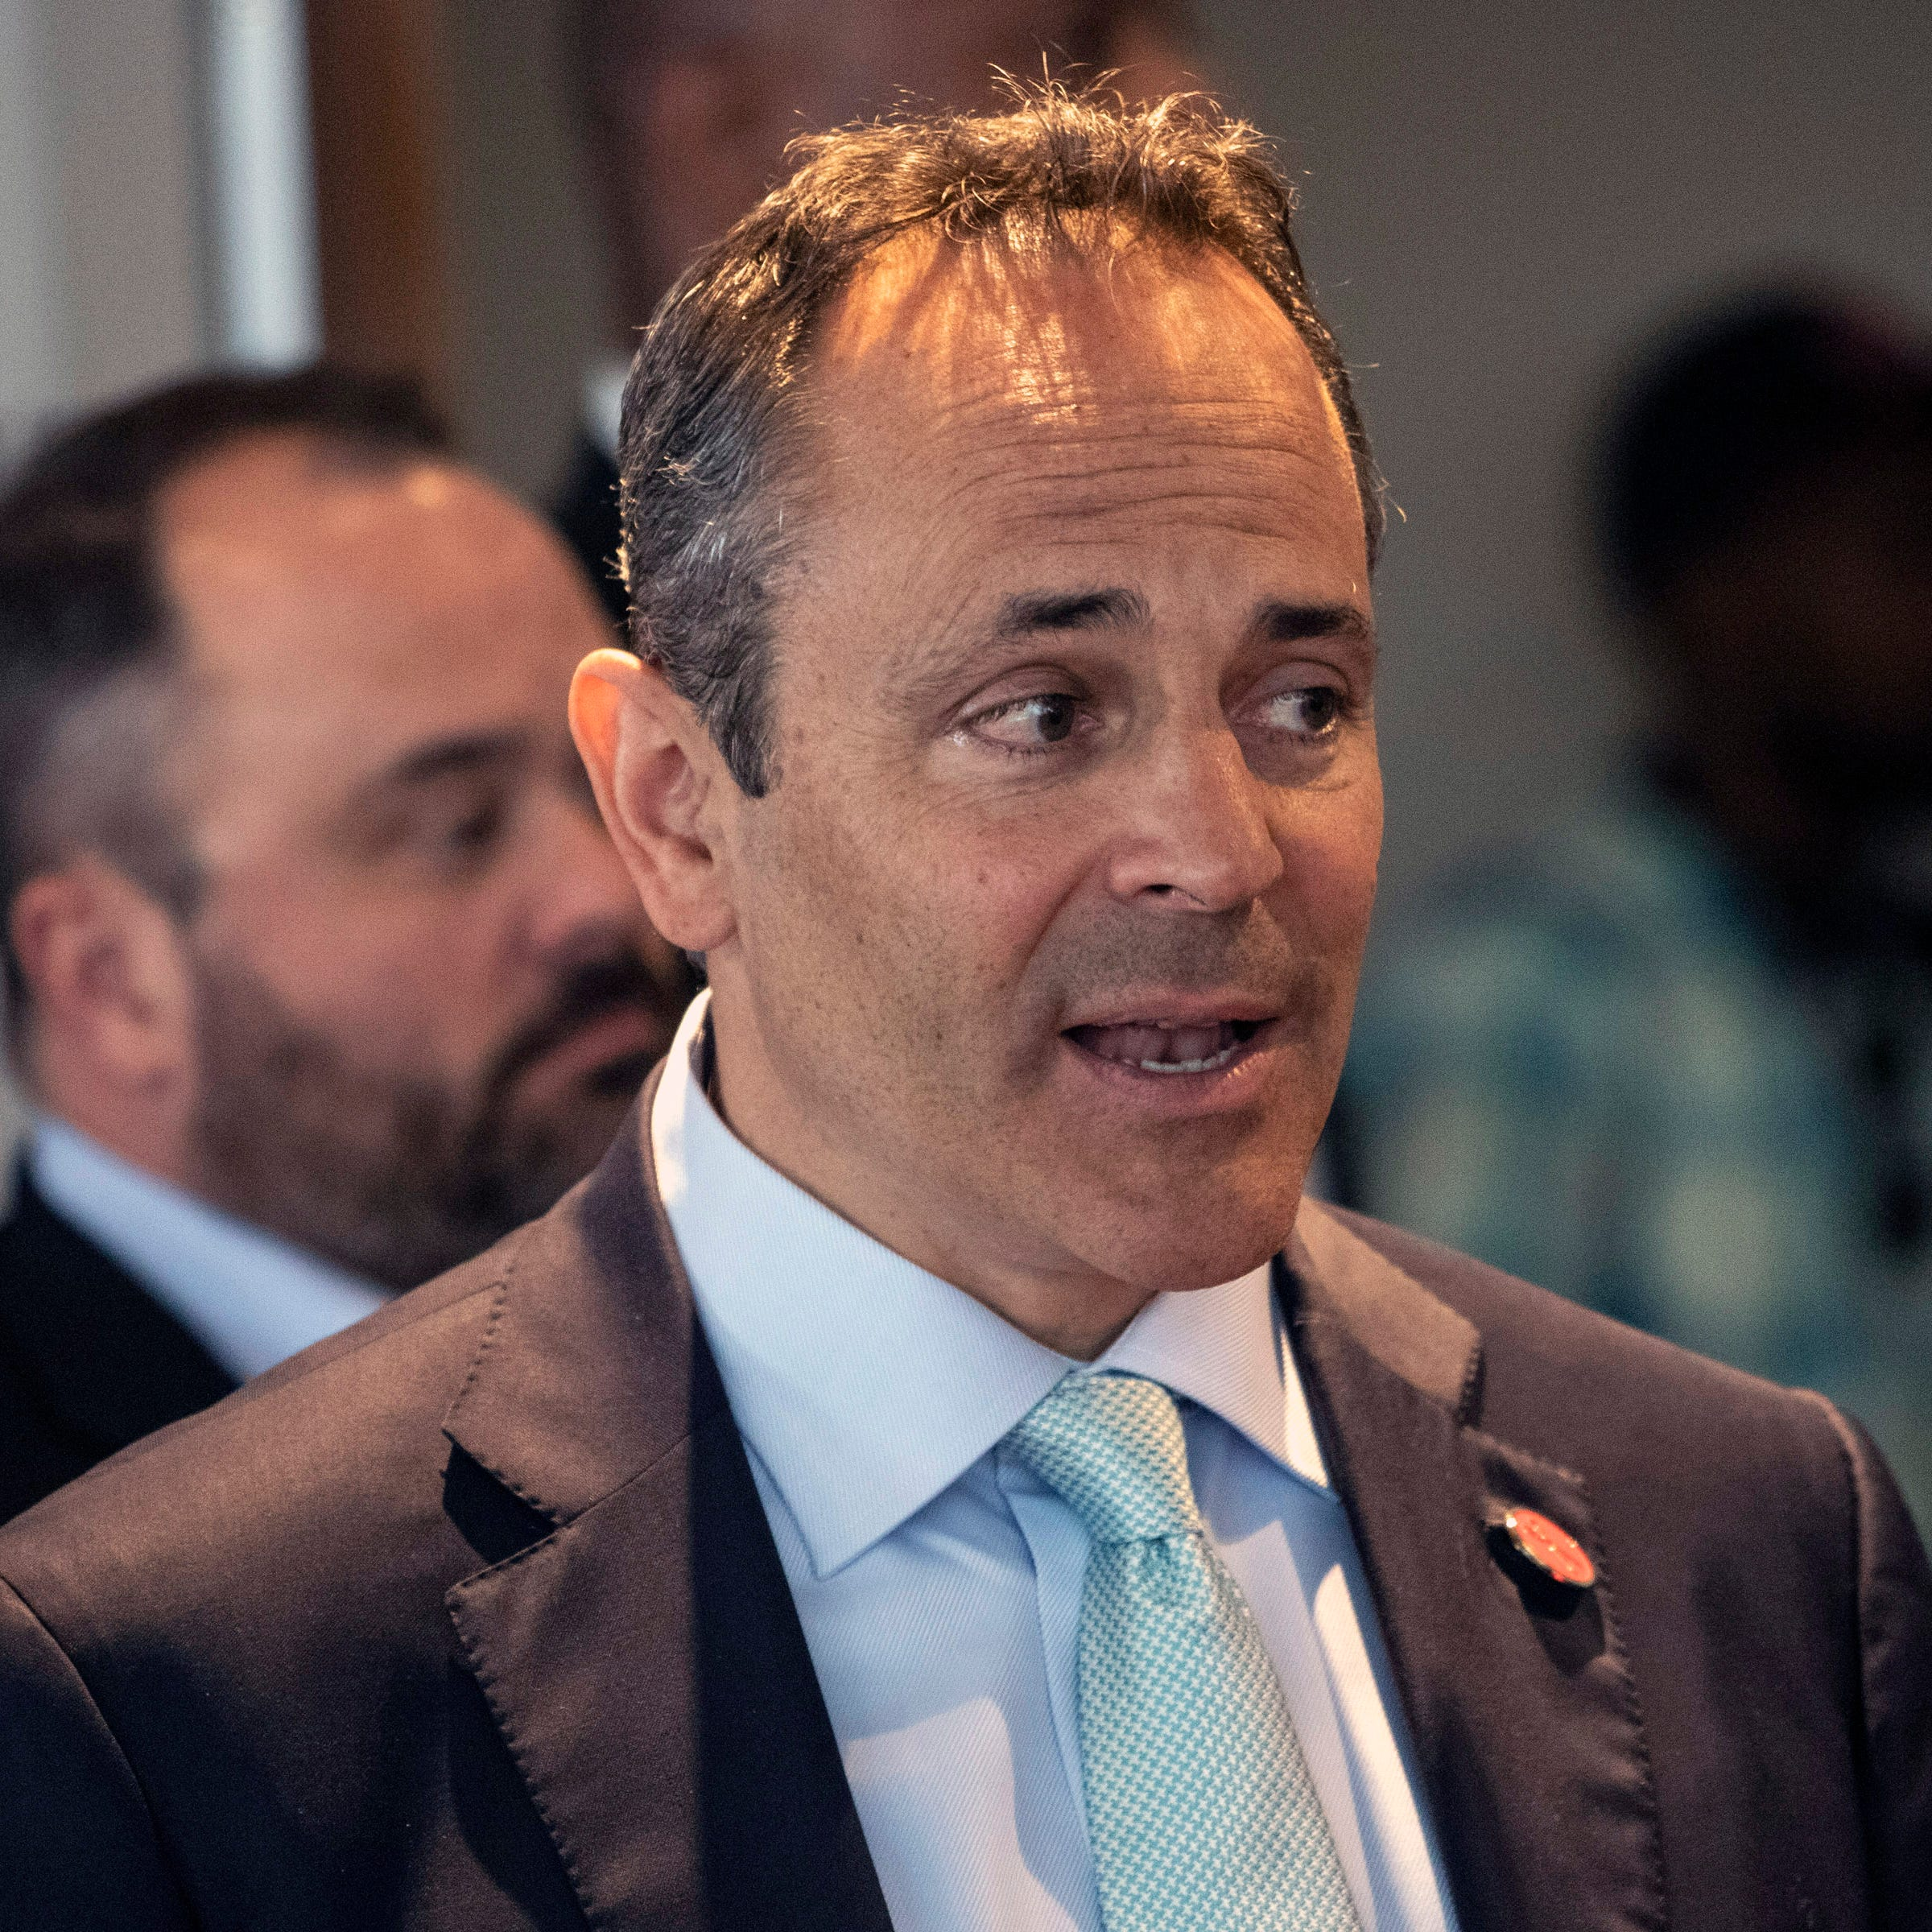 Matt Bevin hates judicial hacks. But he appointed a judge accused of lying to his client